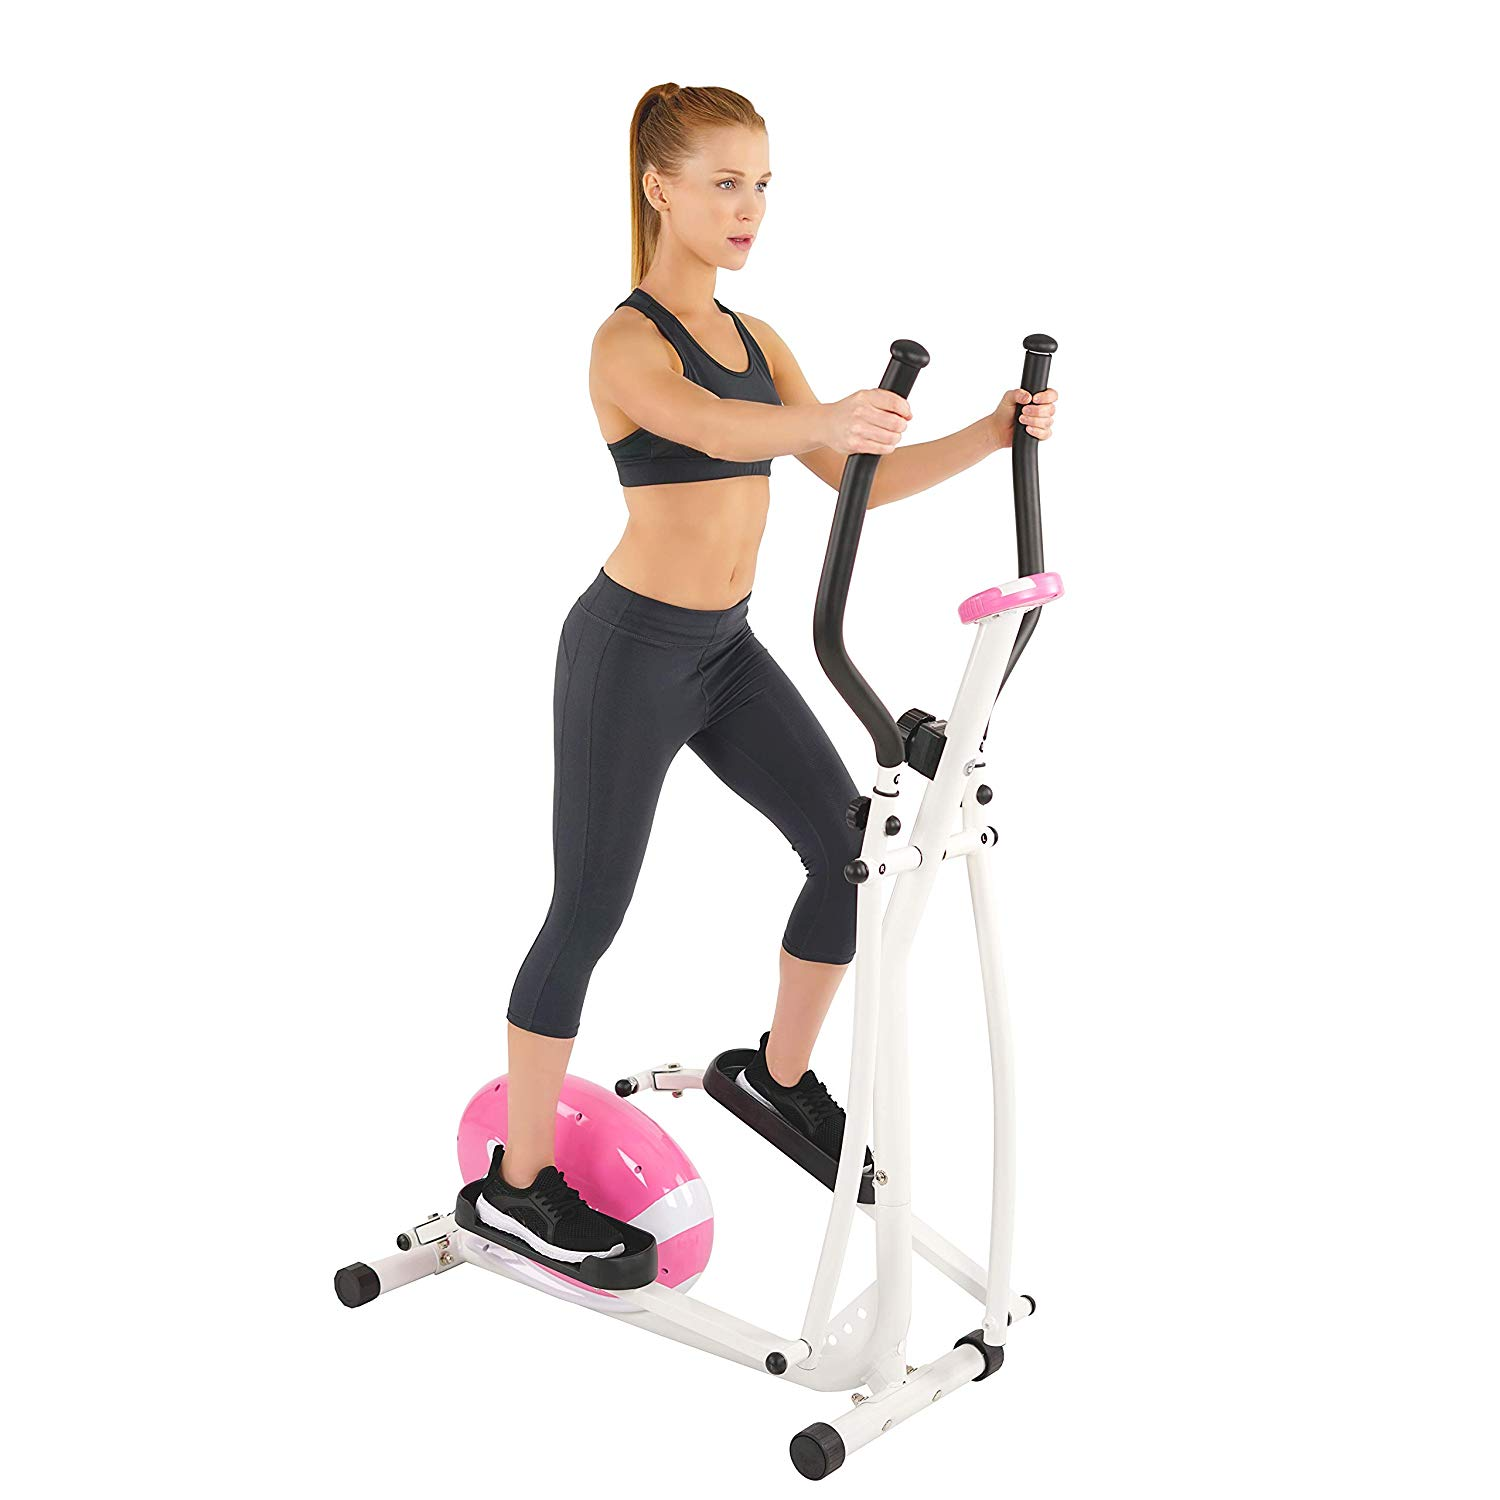 Sunny Health & Fitness P8300 Sunny Health and Fitness Pink Magnetic Elliptical, Pink